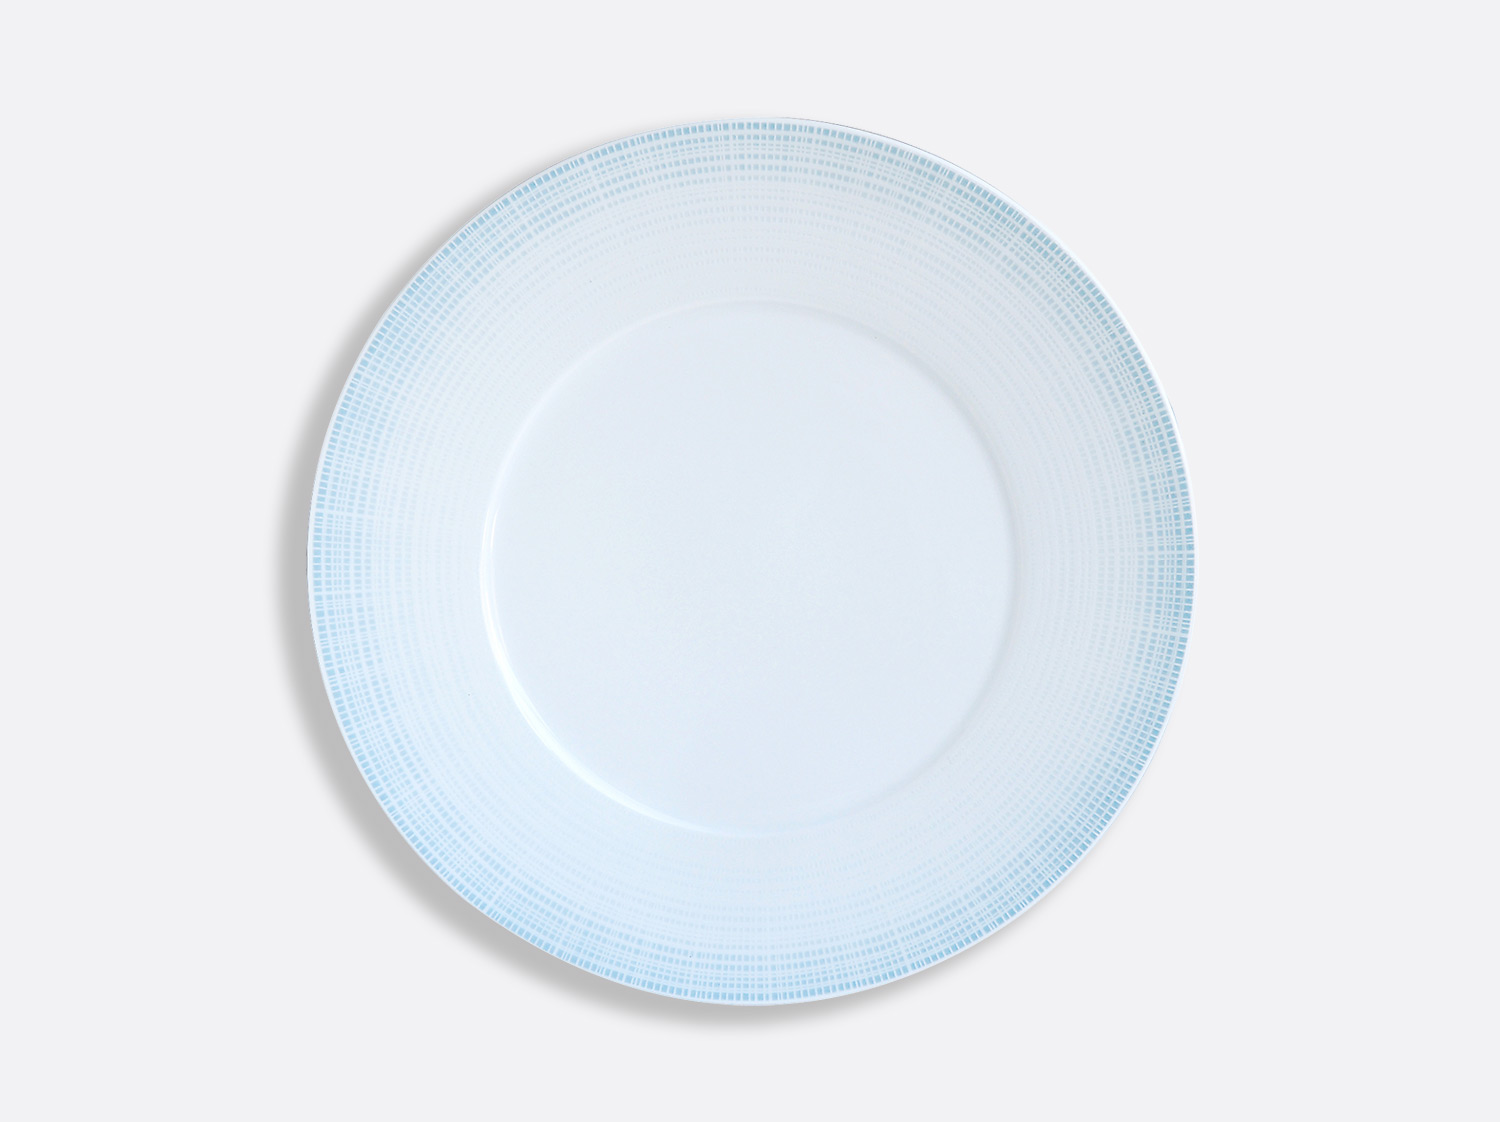 Assiette plate 27 cm en porcelaine de la collection Saphir Bleu Bernardaud